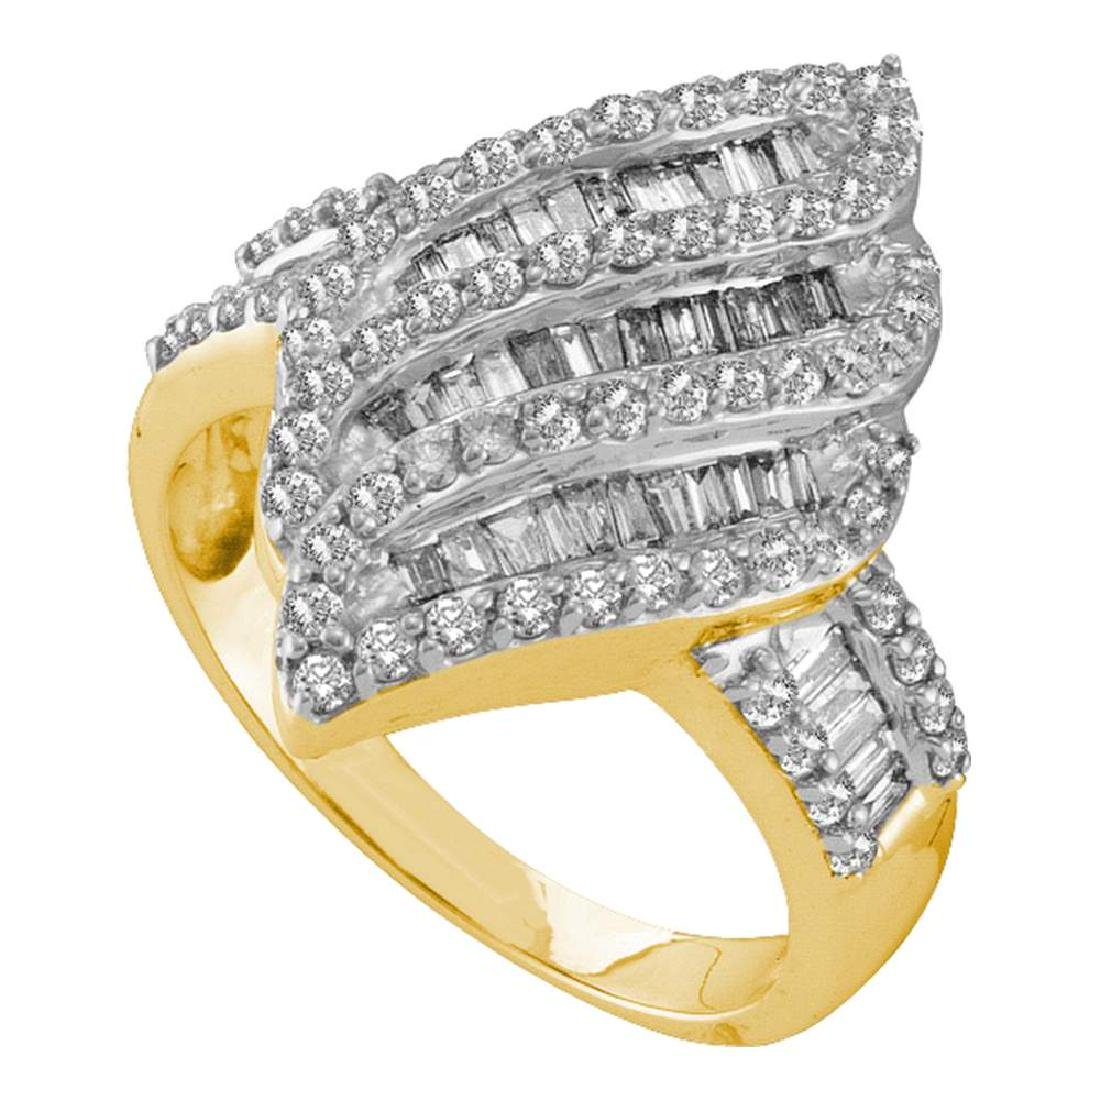 1 CTW Diamond Oval Cluster Ring 14KT Yellow Gold -